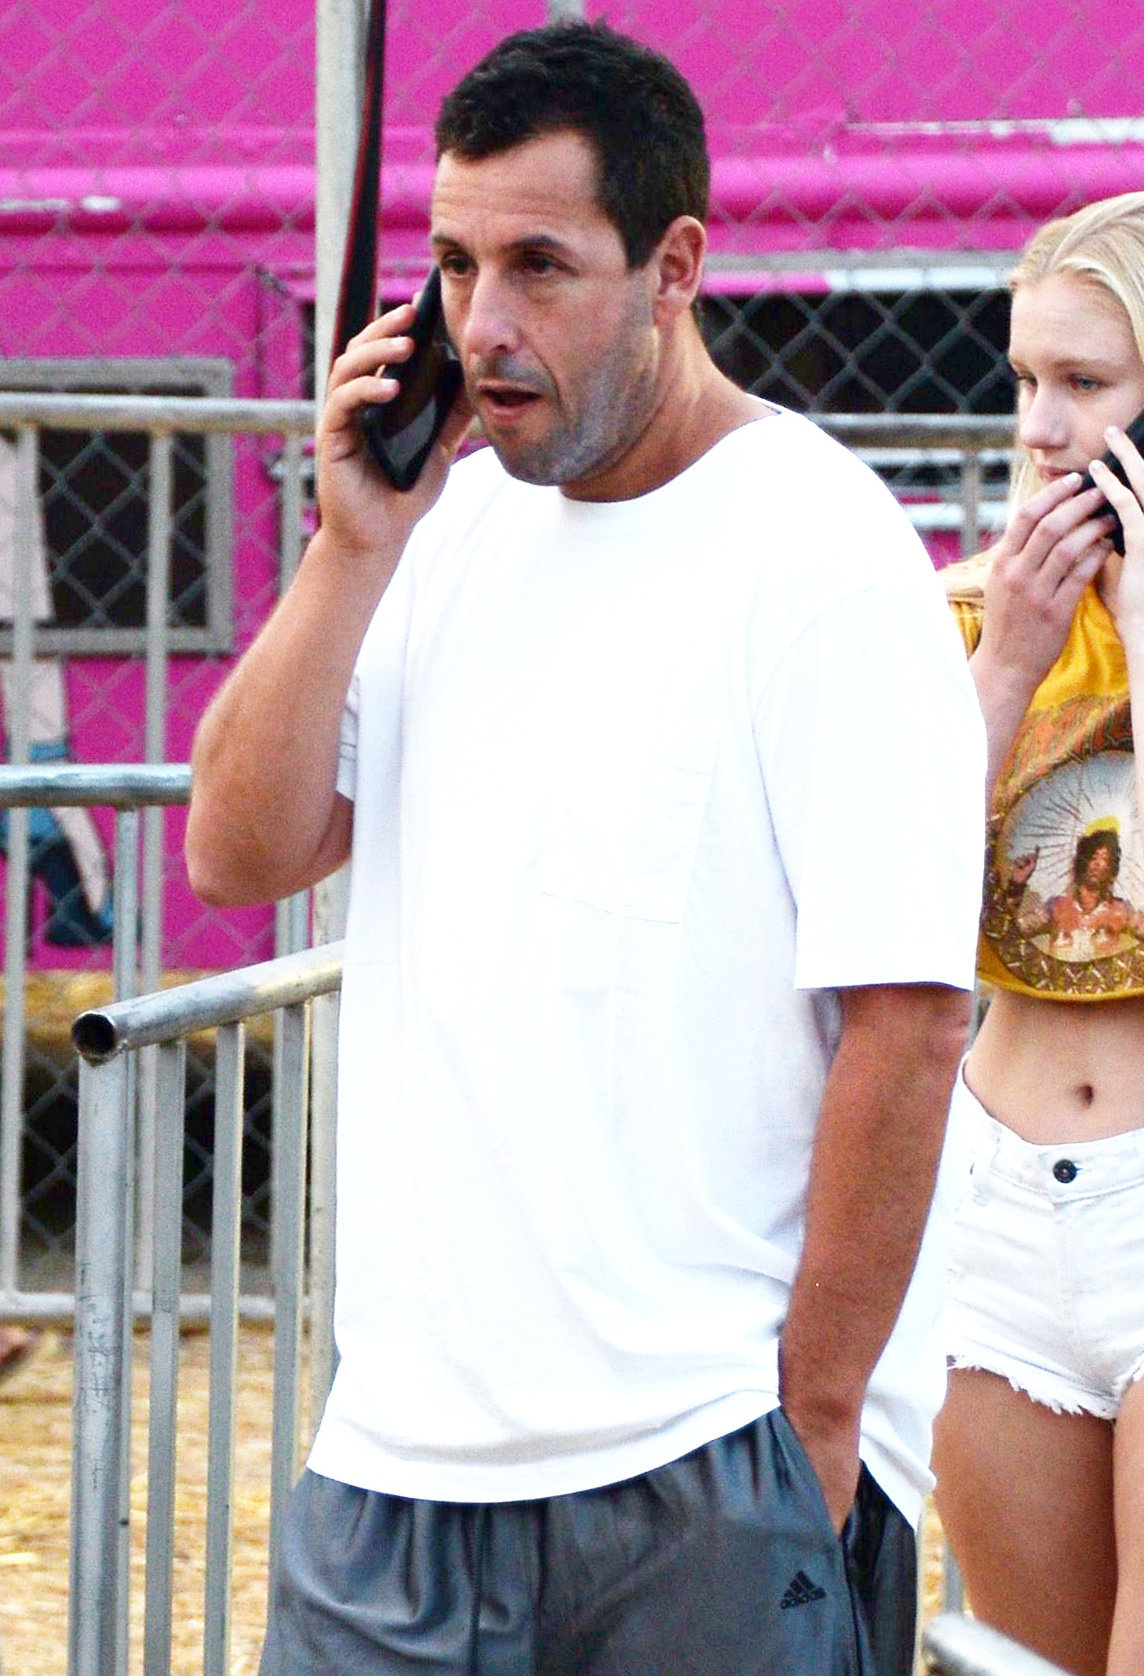 Adam Sandler talked on the phone while at the 36th Annual Malibu Chili Cook Off in Los Angeles, Calif., on Sept. 3, 2017.